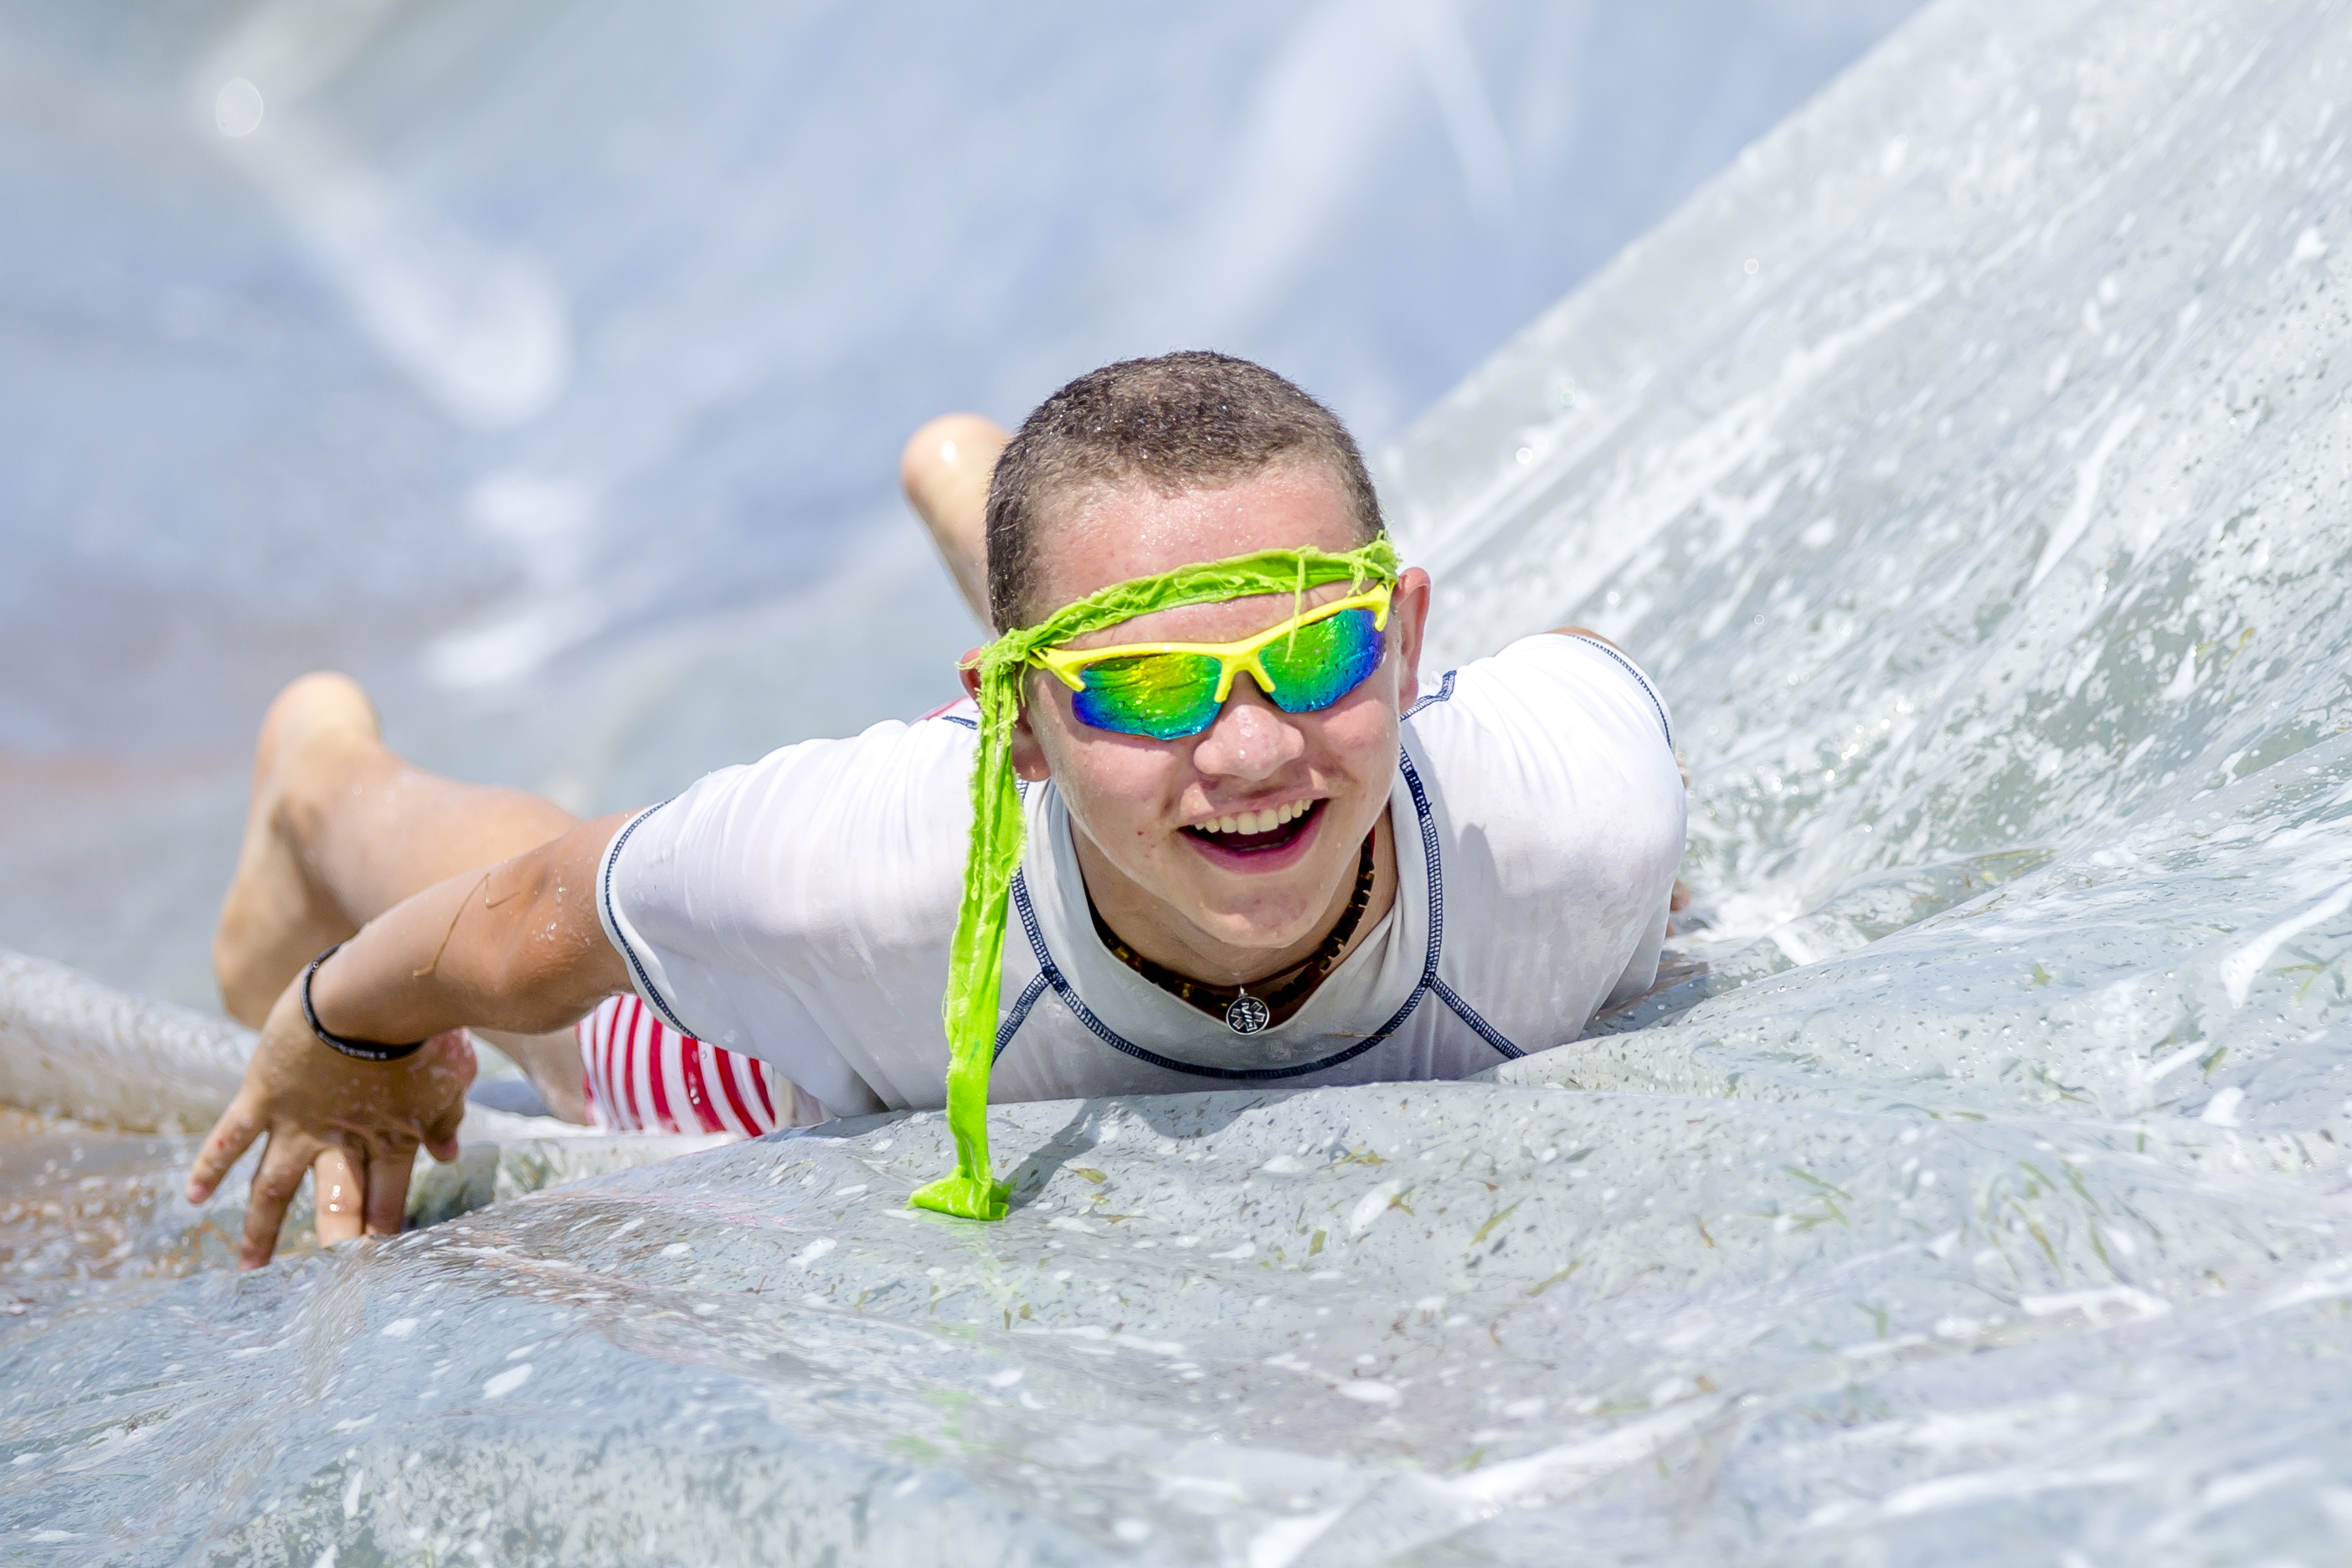 A camper slides down the slip-n-slide.